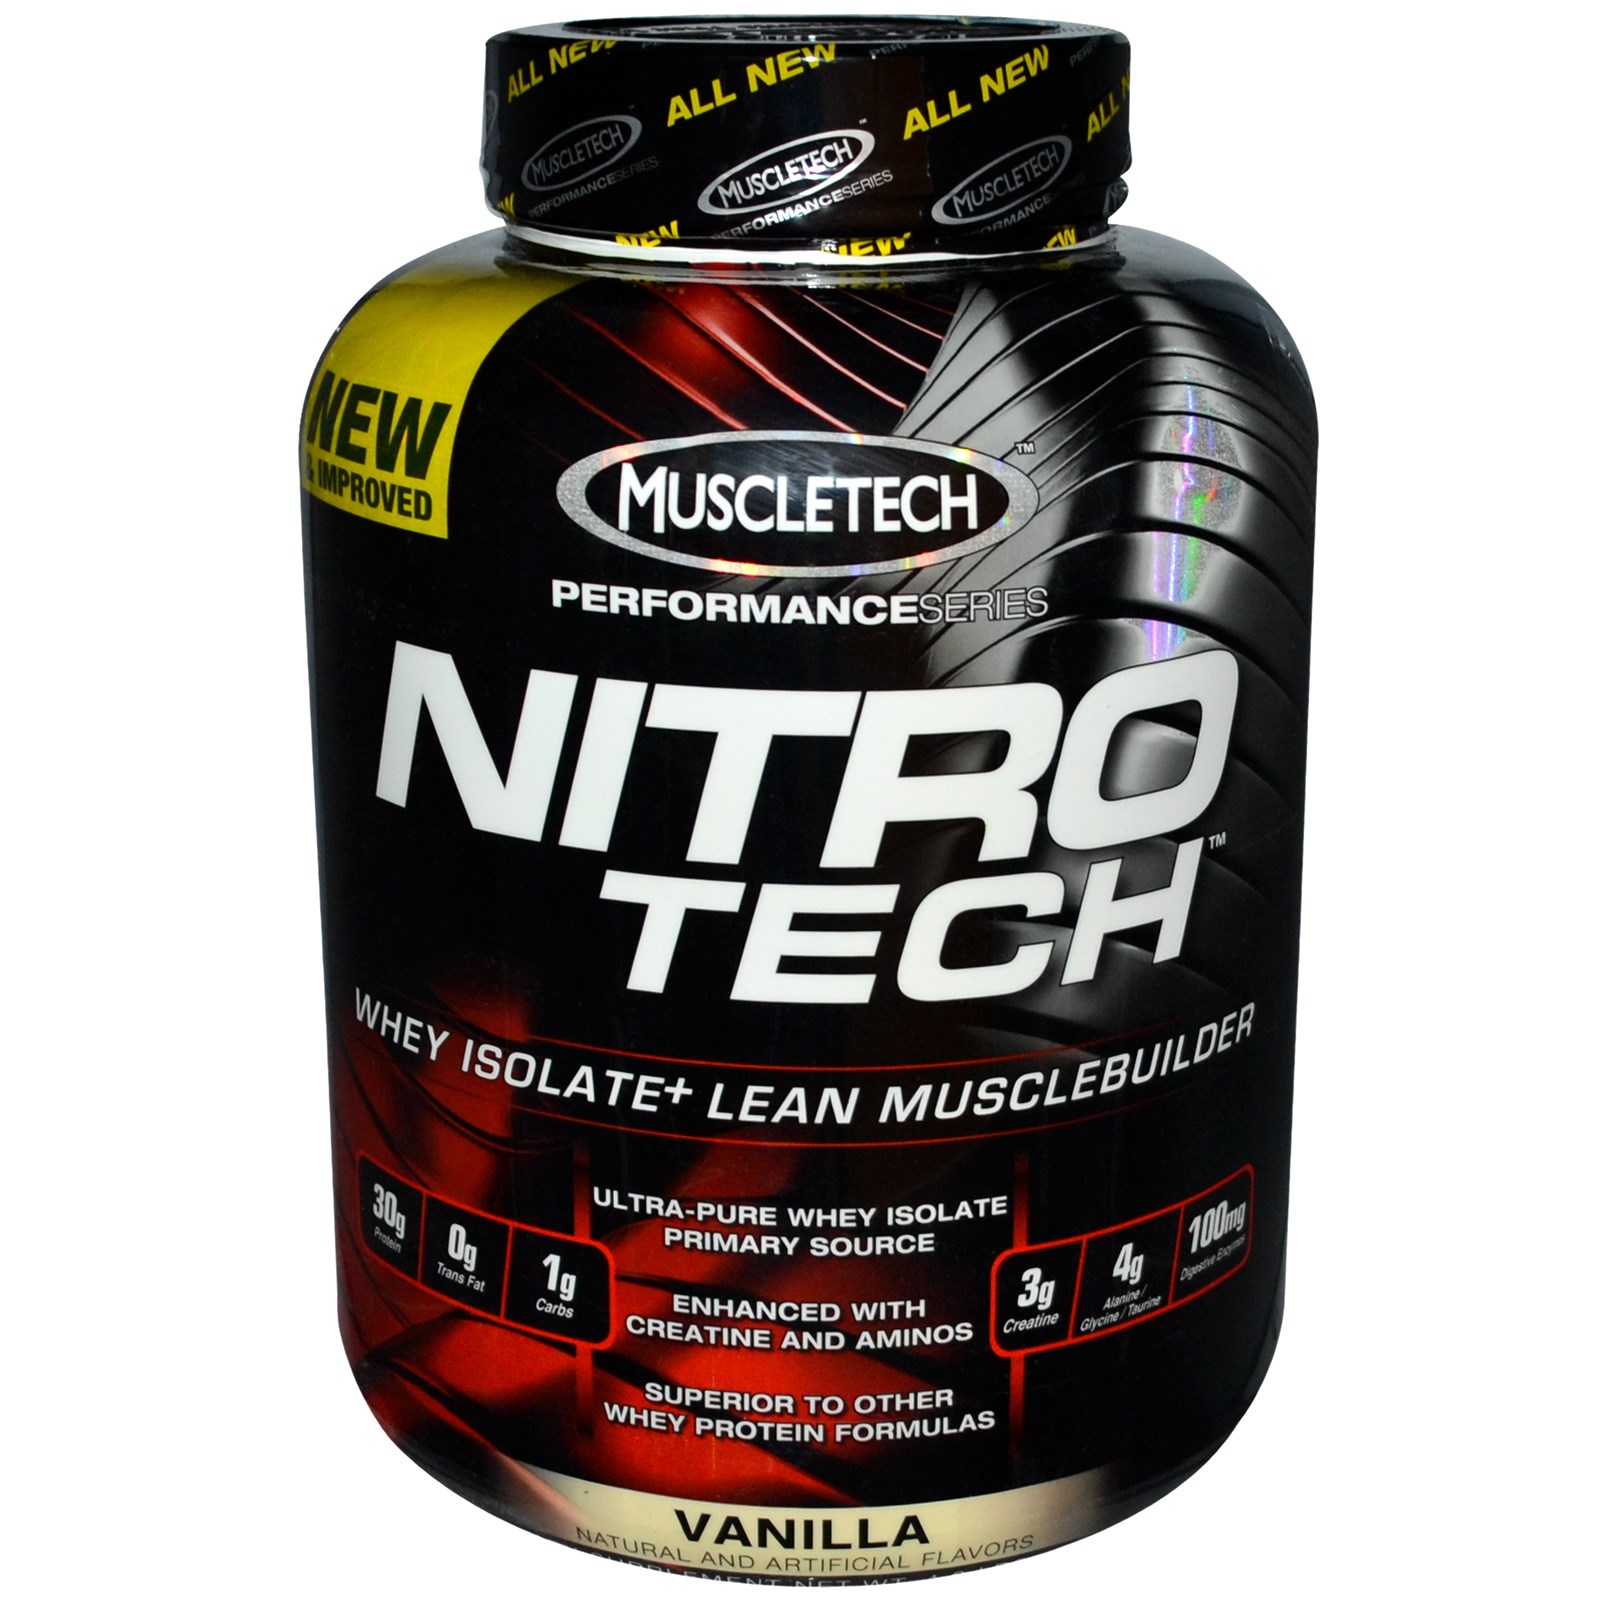 nude-muscletech-nitro-tech-hardcore-lbs-wet-and